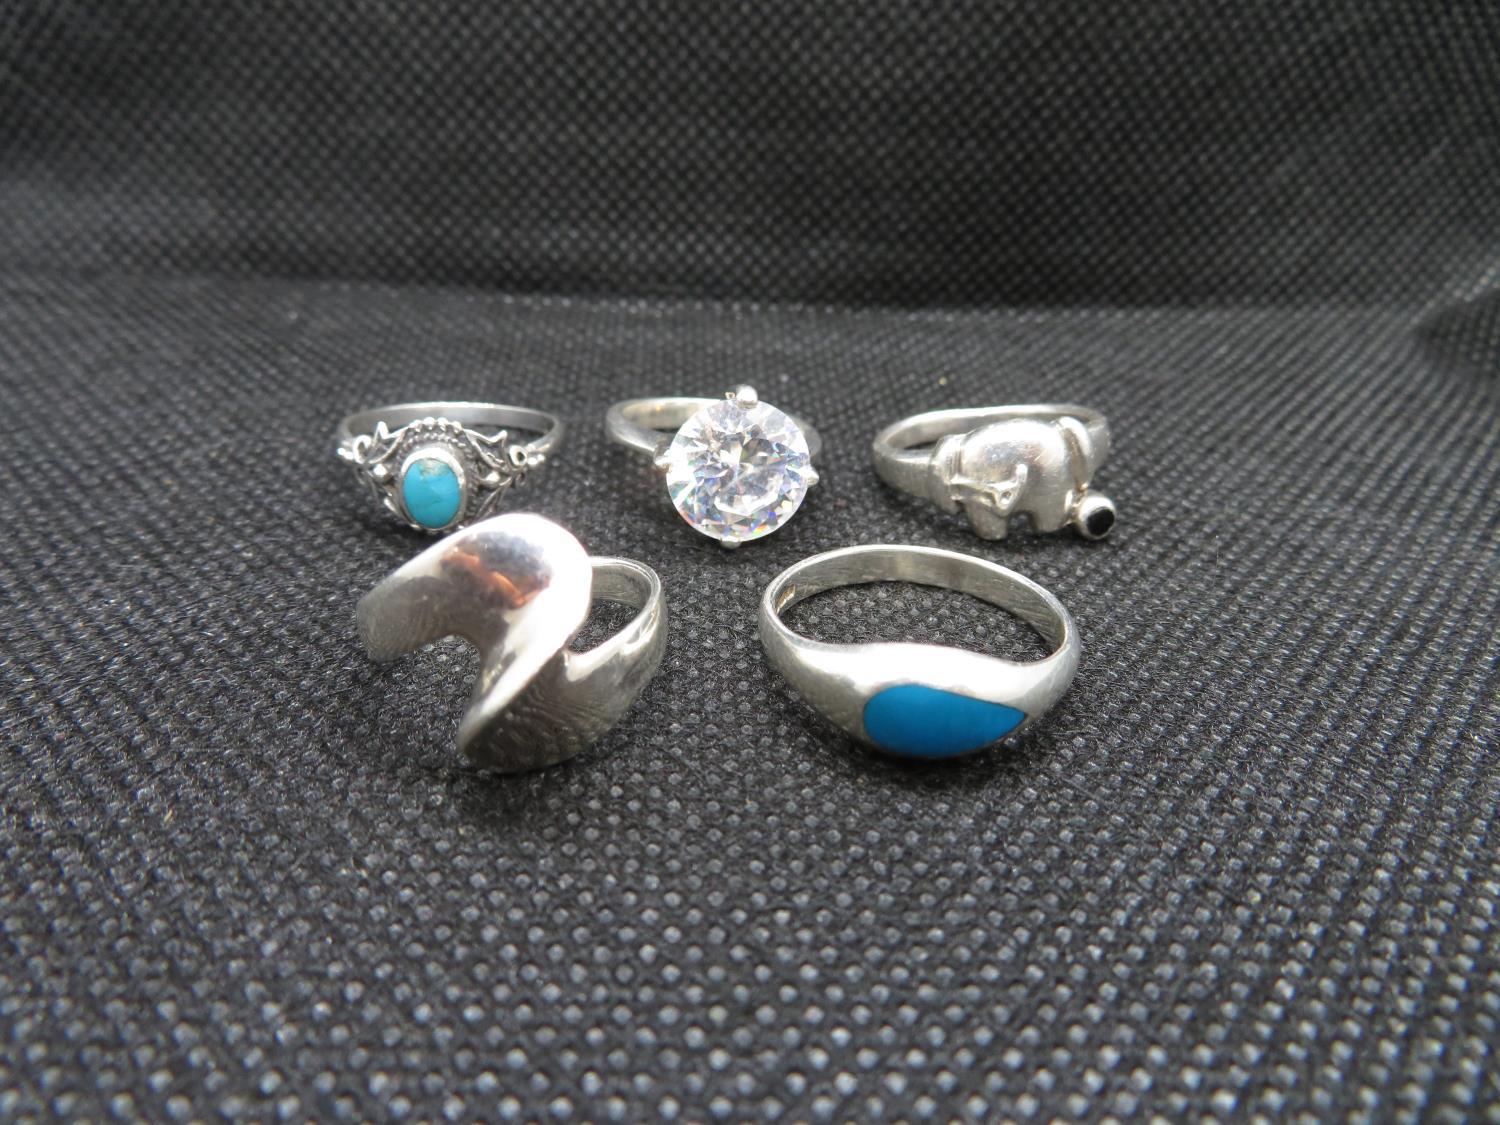 Lot 50 - Job lot of 5x silver rings - small sizes 14g